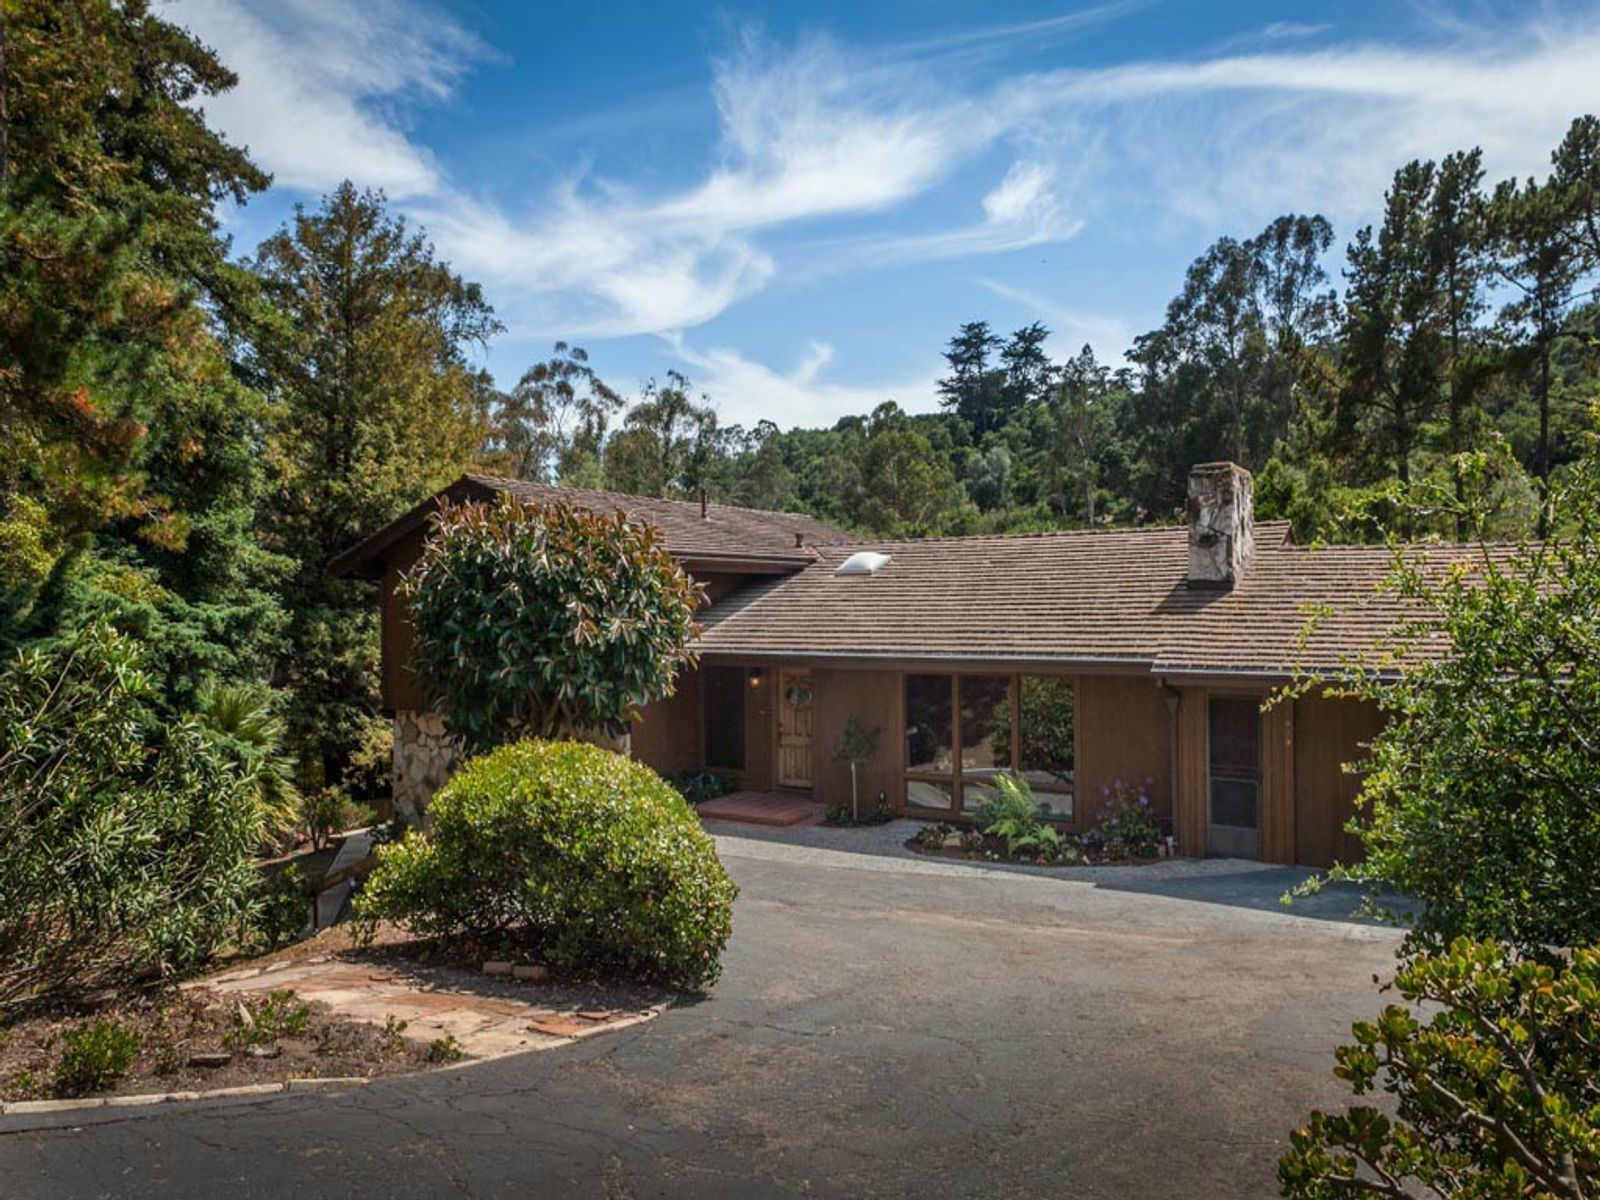 Rustic Woodland Setting, Santa Barbara CA Single Family Home - Santa Barbara Real Estate